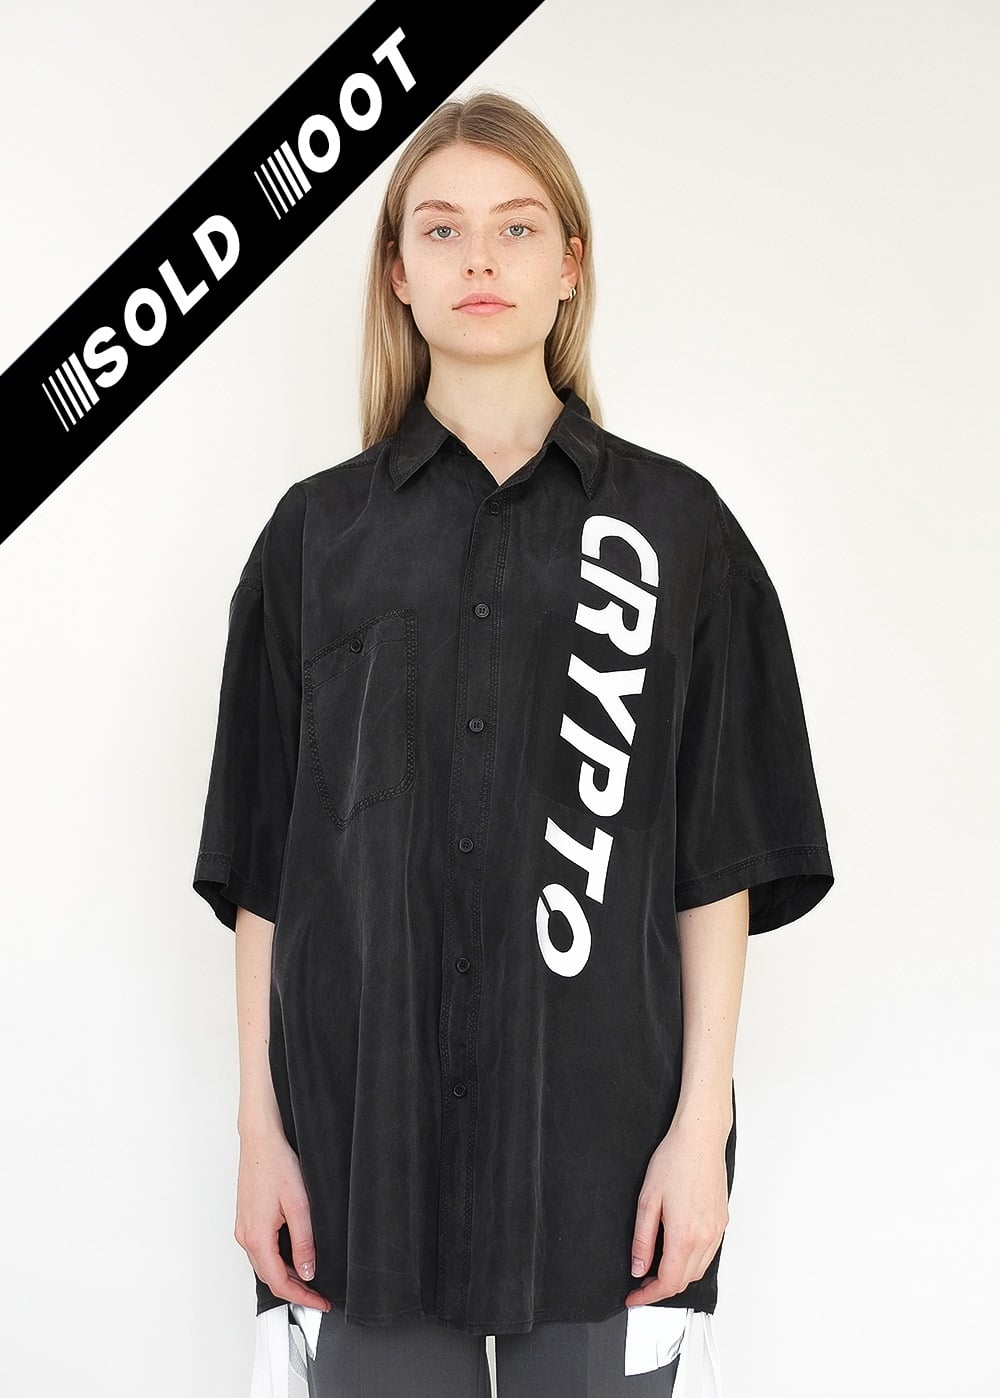 Reflective Crypto Silk Shirt 333